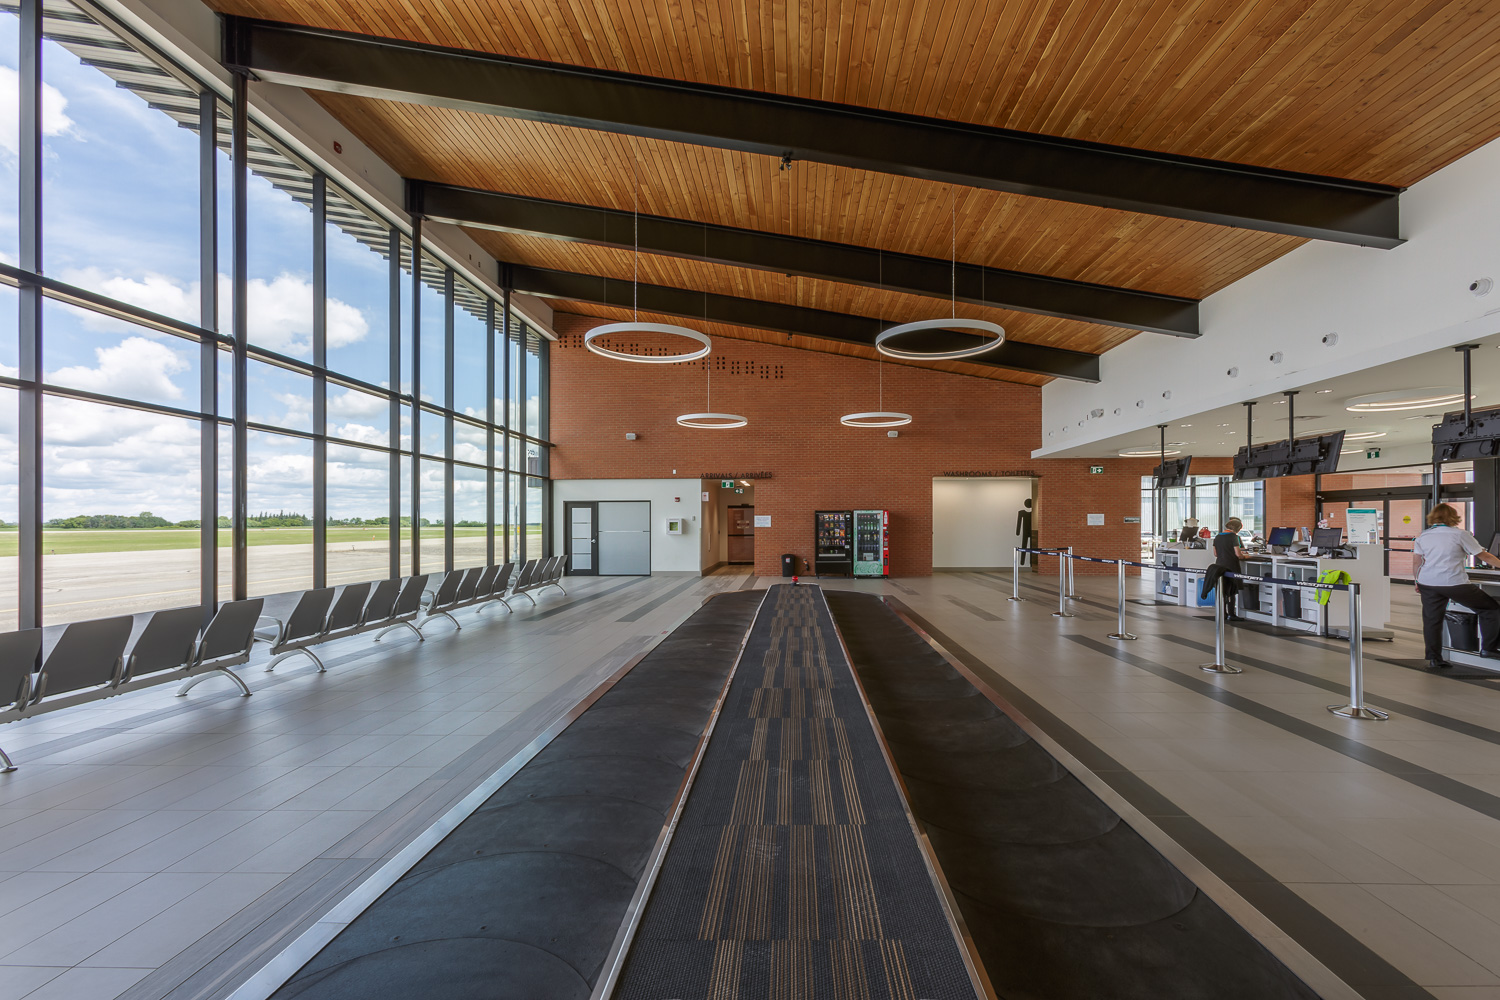 Brandon Municipal Airport, interior photo of empty Arrivals Hall and baggage carousel / Photo:  Lindsay Reid